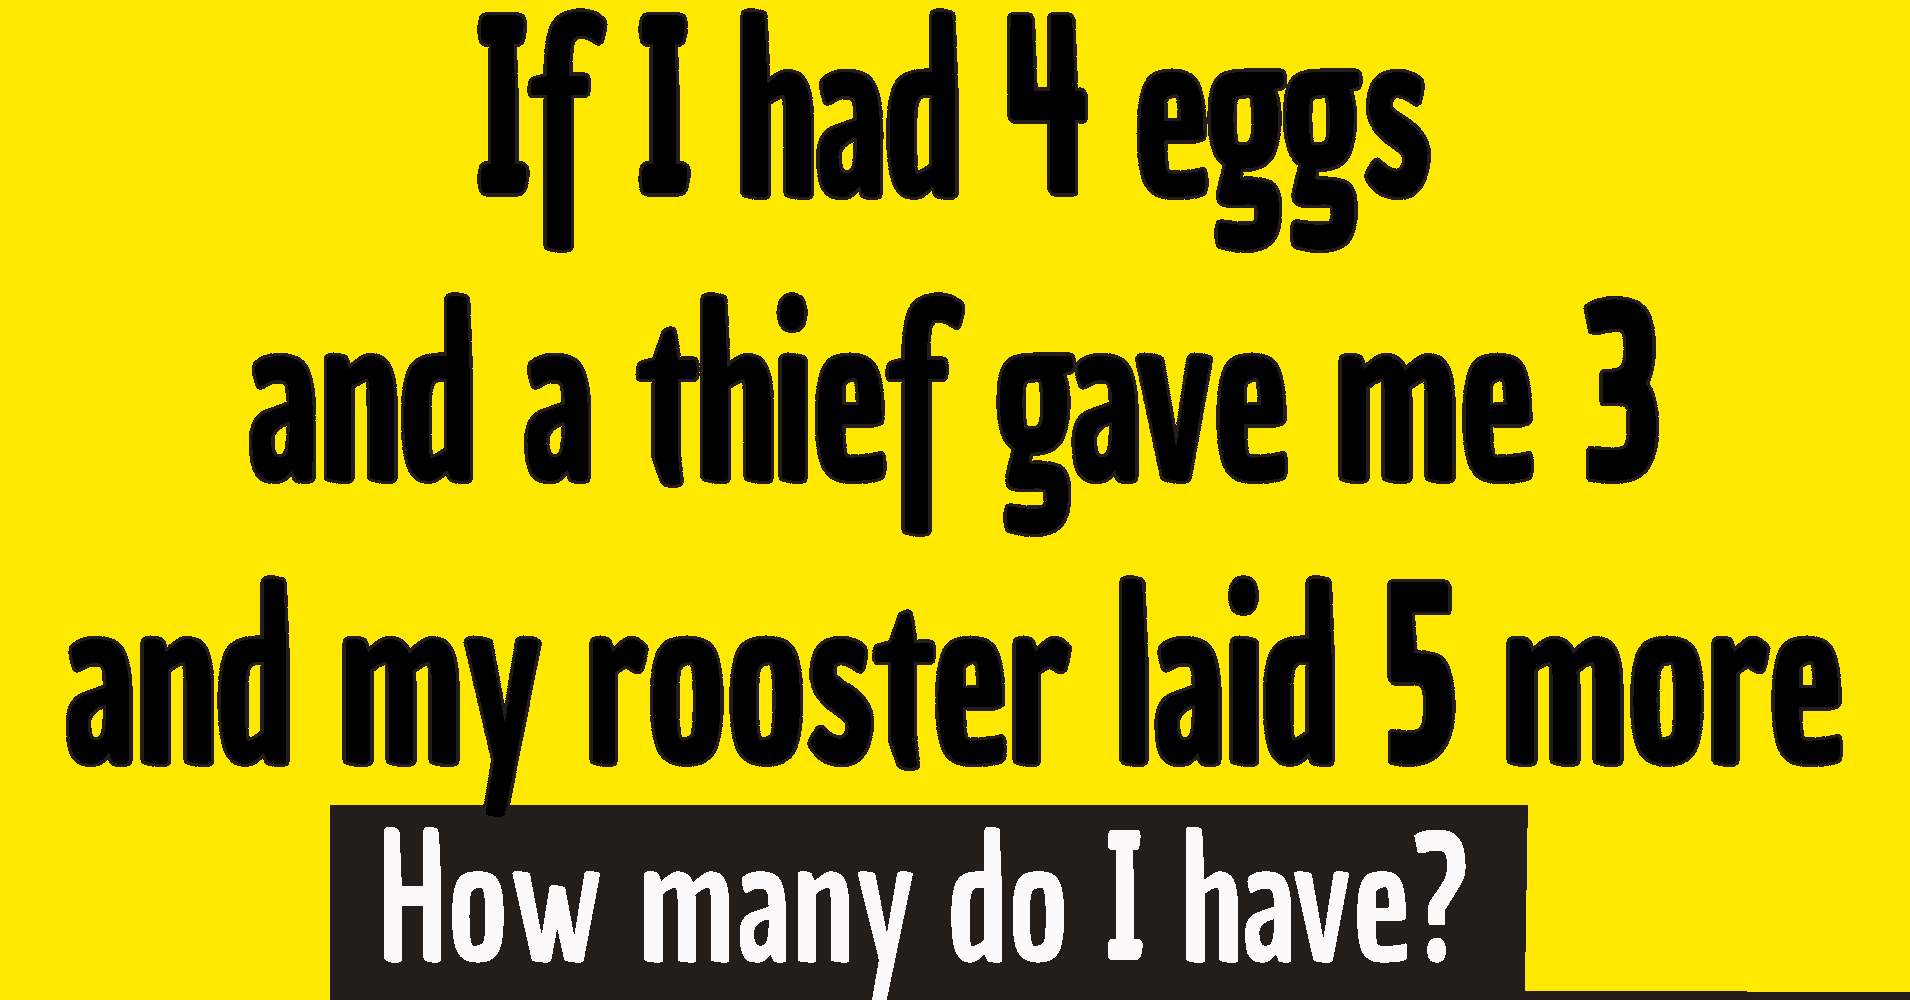 If I had 4 eggs riddle answer / If I had 4 eggs and a thief gave me 3 and my rooster laid 5 more